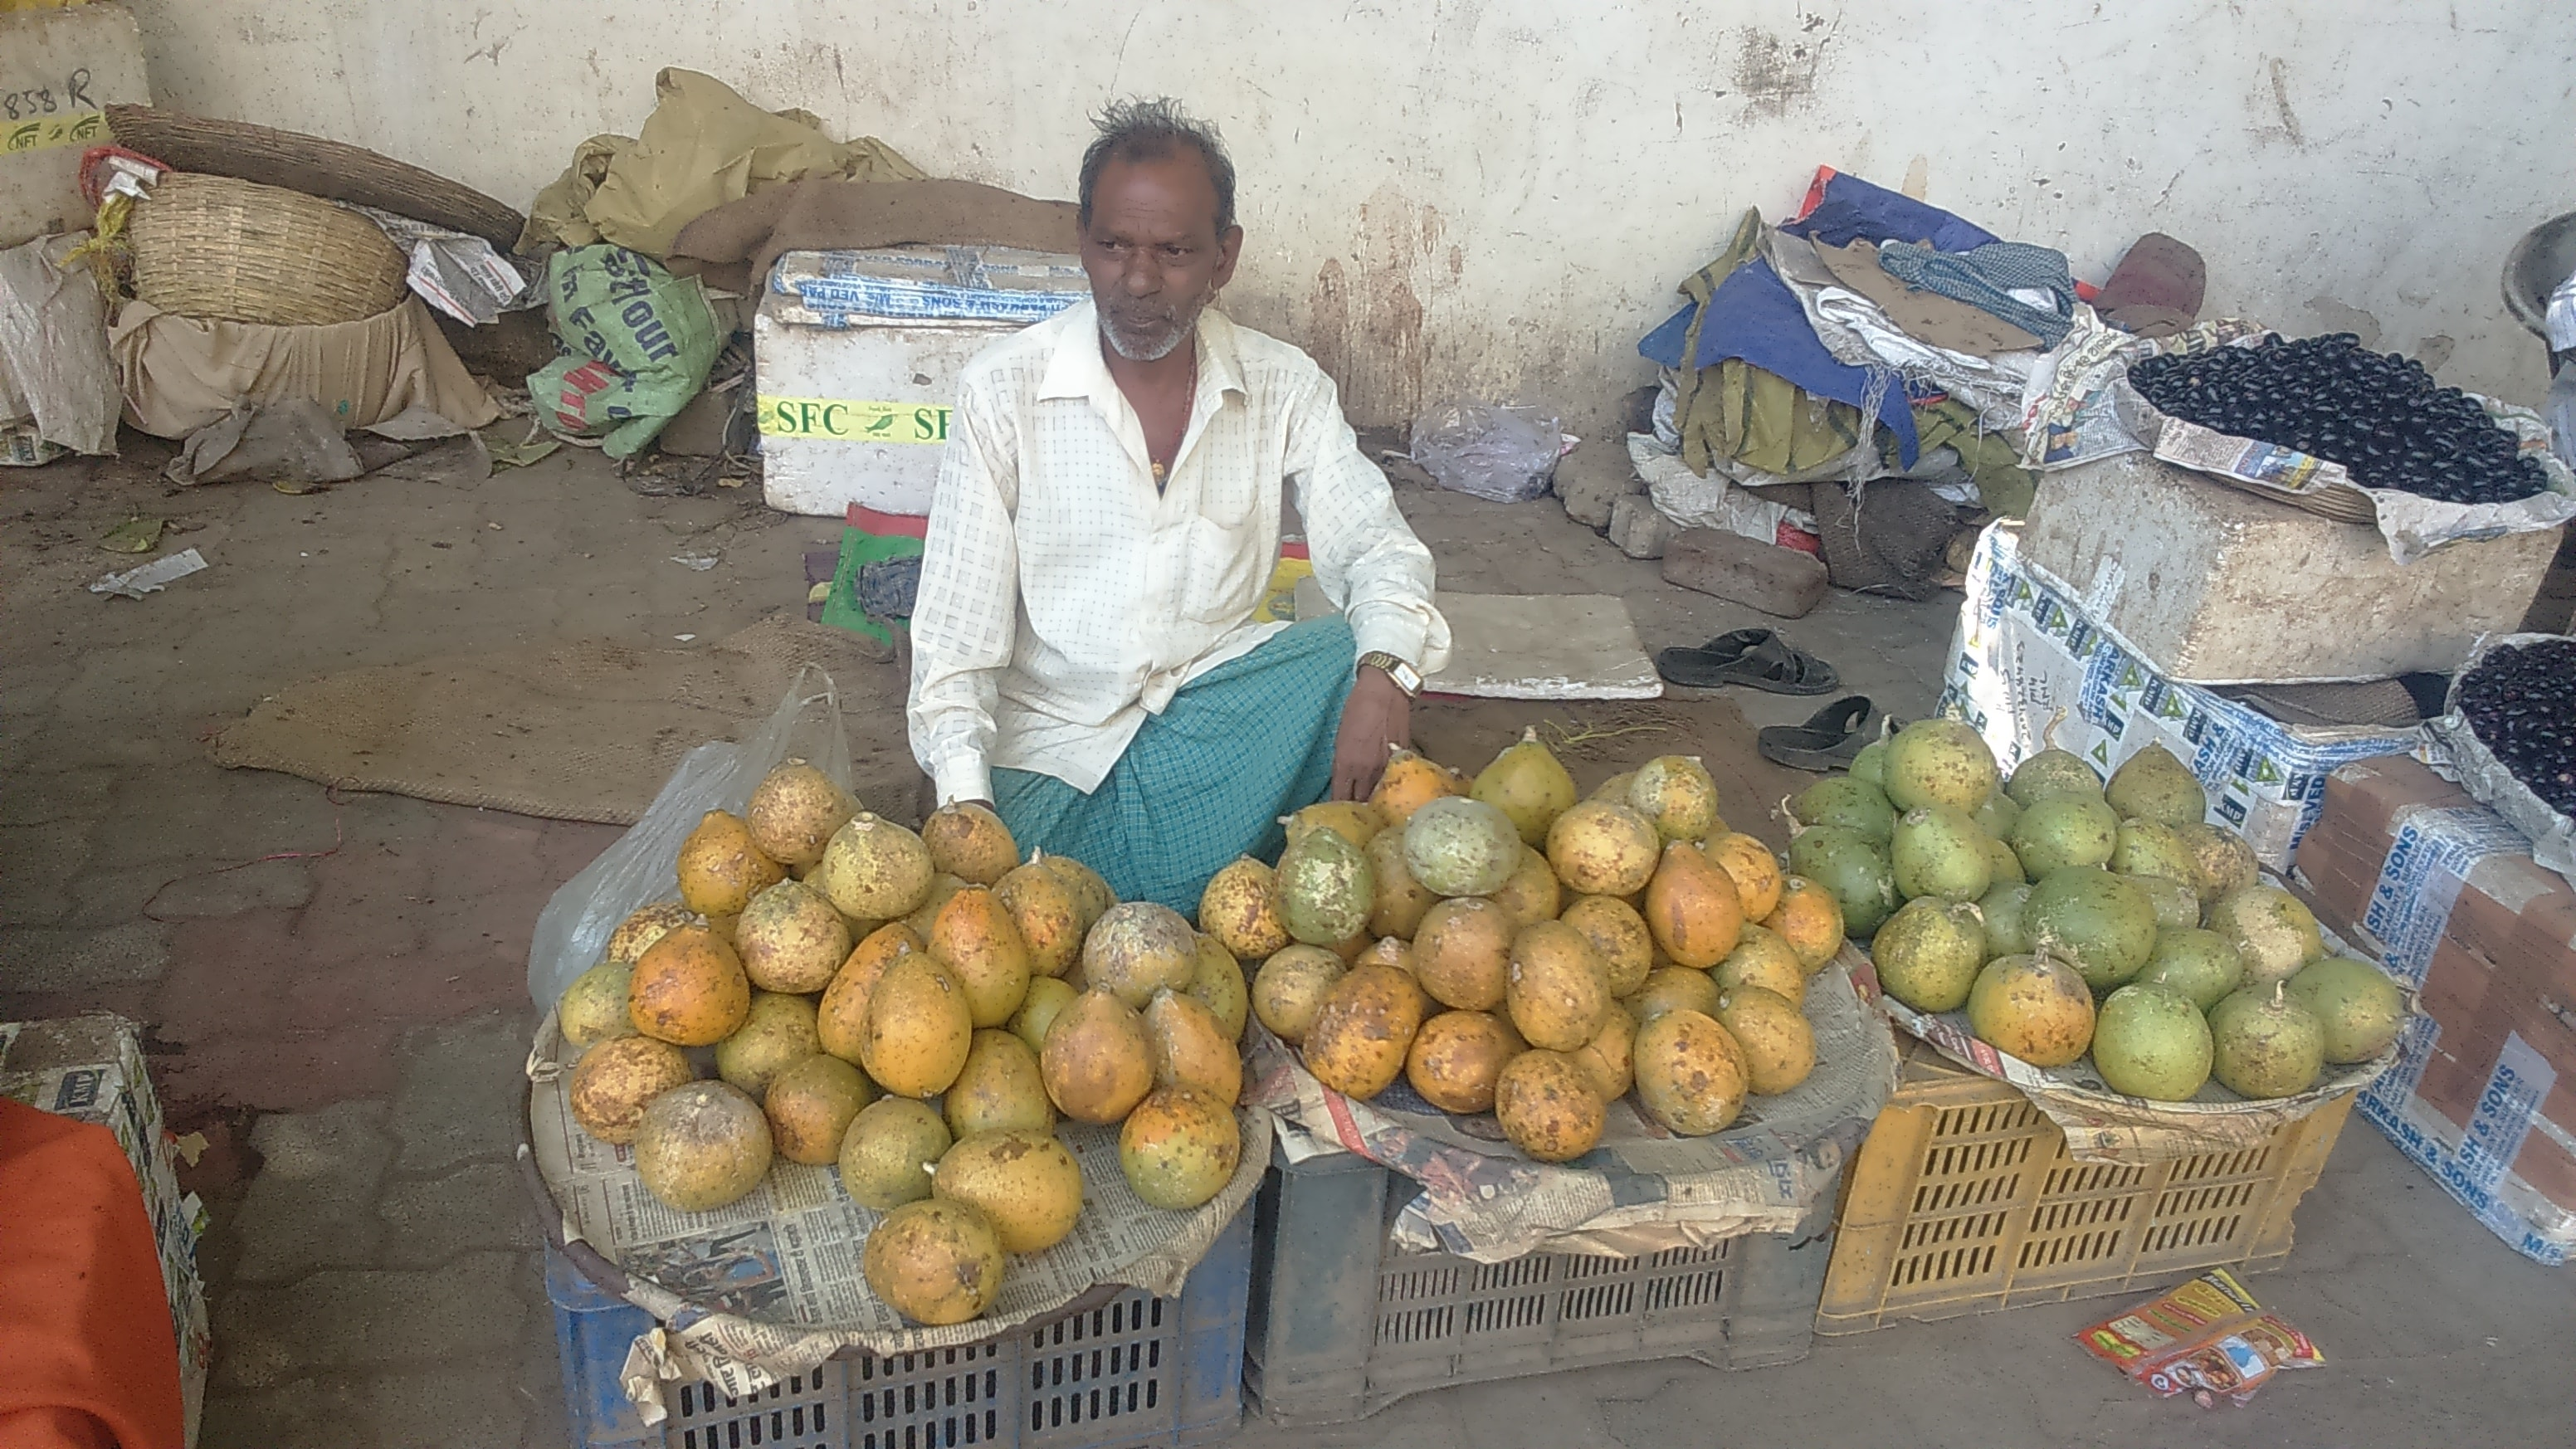 <p>Selling now is Bael,Aegle Marmelos,or golden apple,stone apple.It is a species of tree native to Jharkhand,Bihar,West Bengal and Bangladesh,is considered to be sacred by Hindus.Its&#8230;